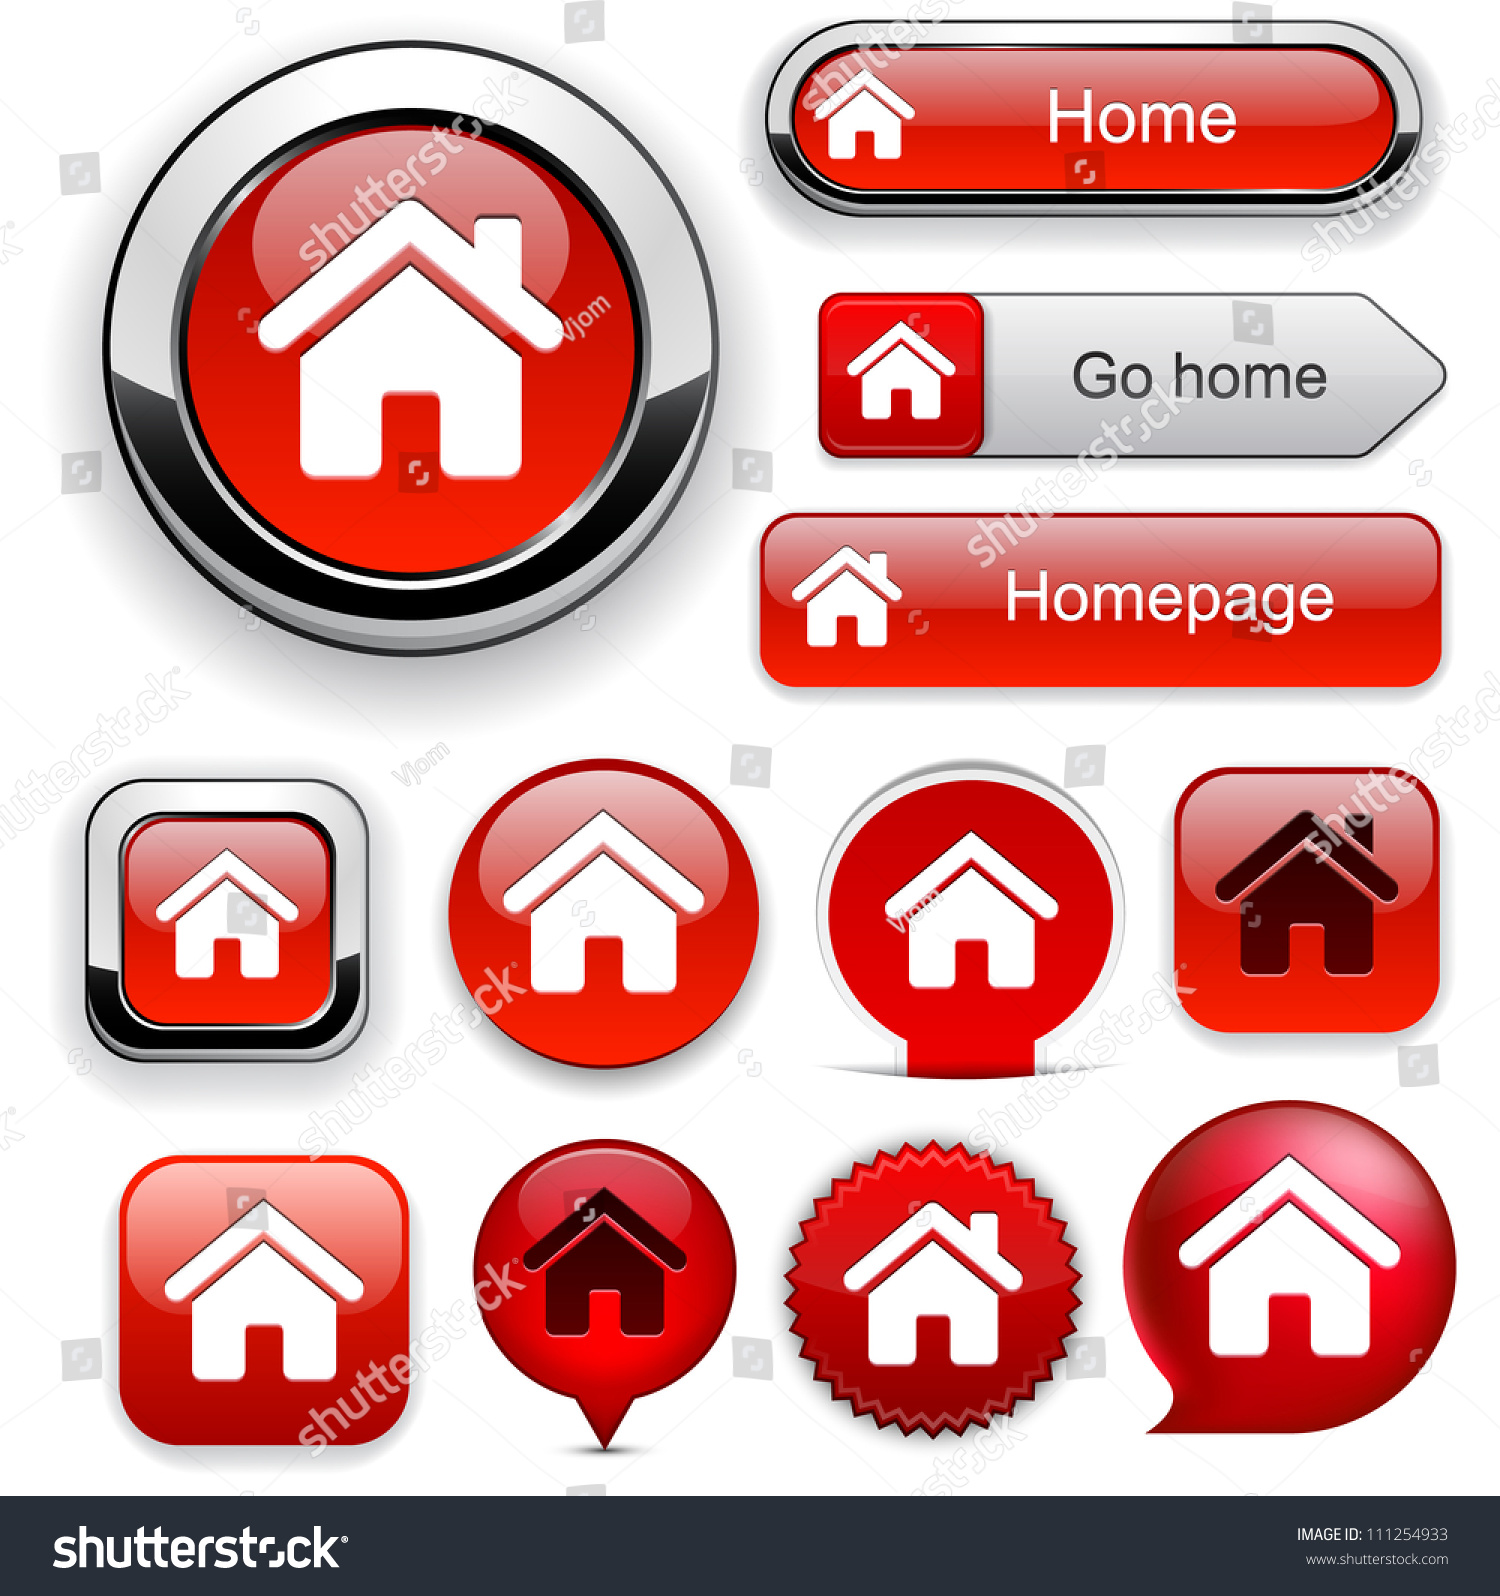 Home red design elements website app stock vector 111254933 shutterstock - Home design elements ...